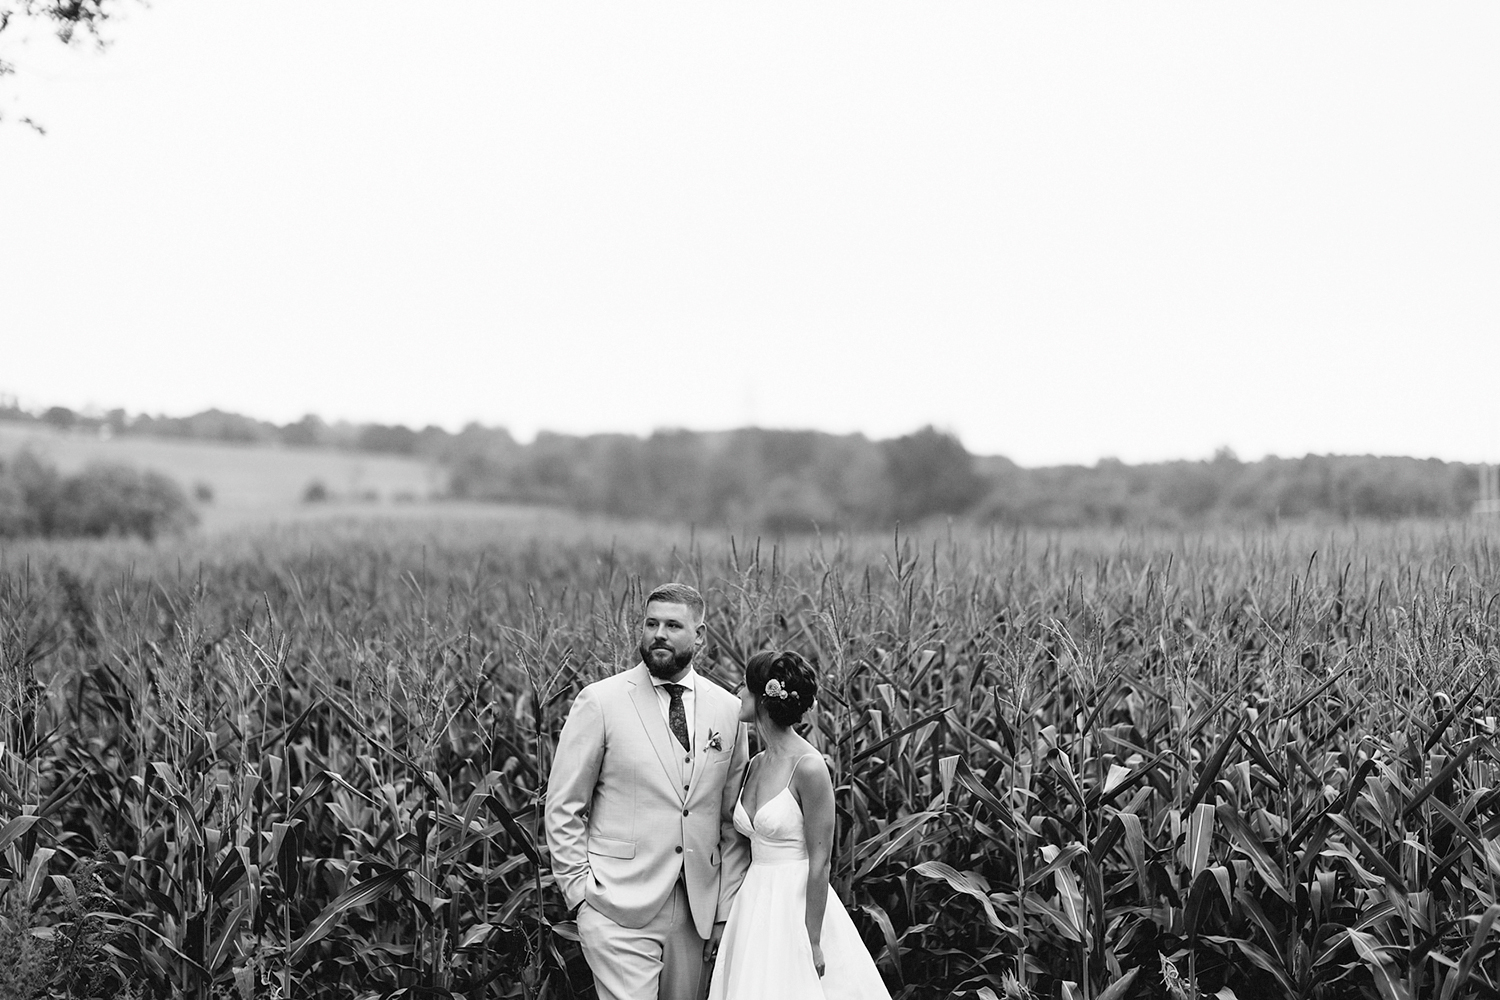 Best-Toronto-Wedding-Photographers-Photojournalistic-Wedding-Photography-in-Toronto-Ryanne-Hollies-Photography-candid-documentary-bradford-family-farm-rustic-venue-inspiration-bride-and-groom-portraits-in-corn-field-bw.jpg